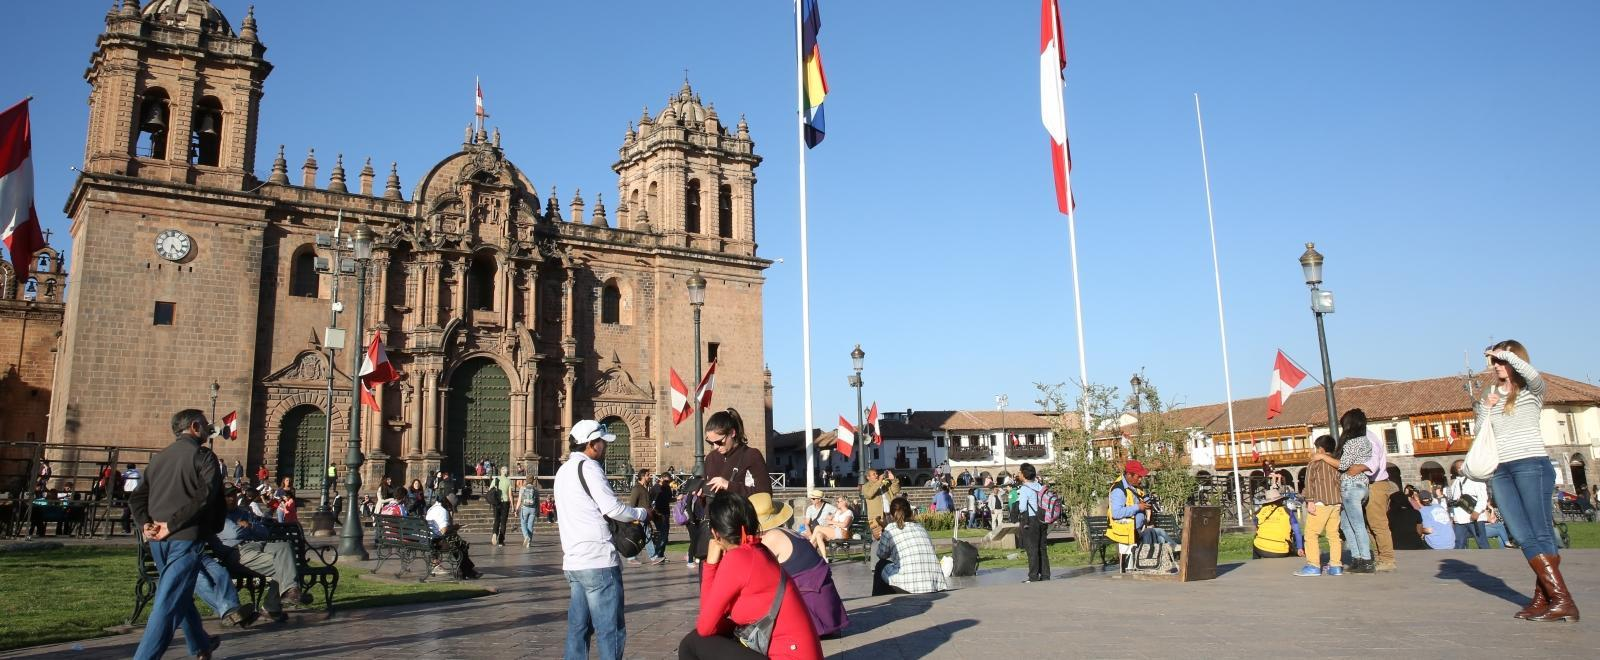 On the Spanish Language Course in Peru, students explore the local area and stop by a cathedral.